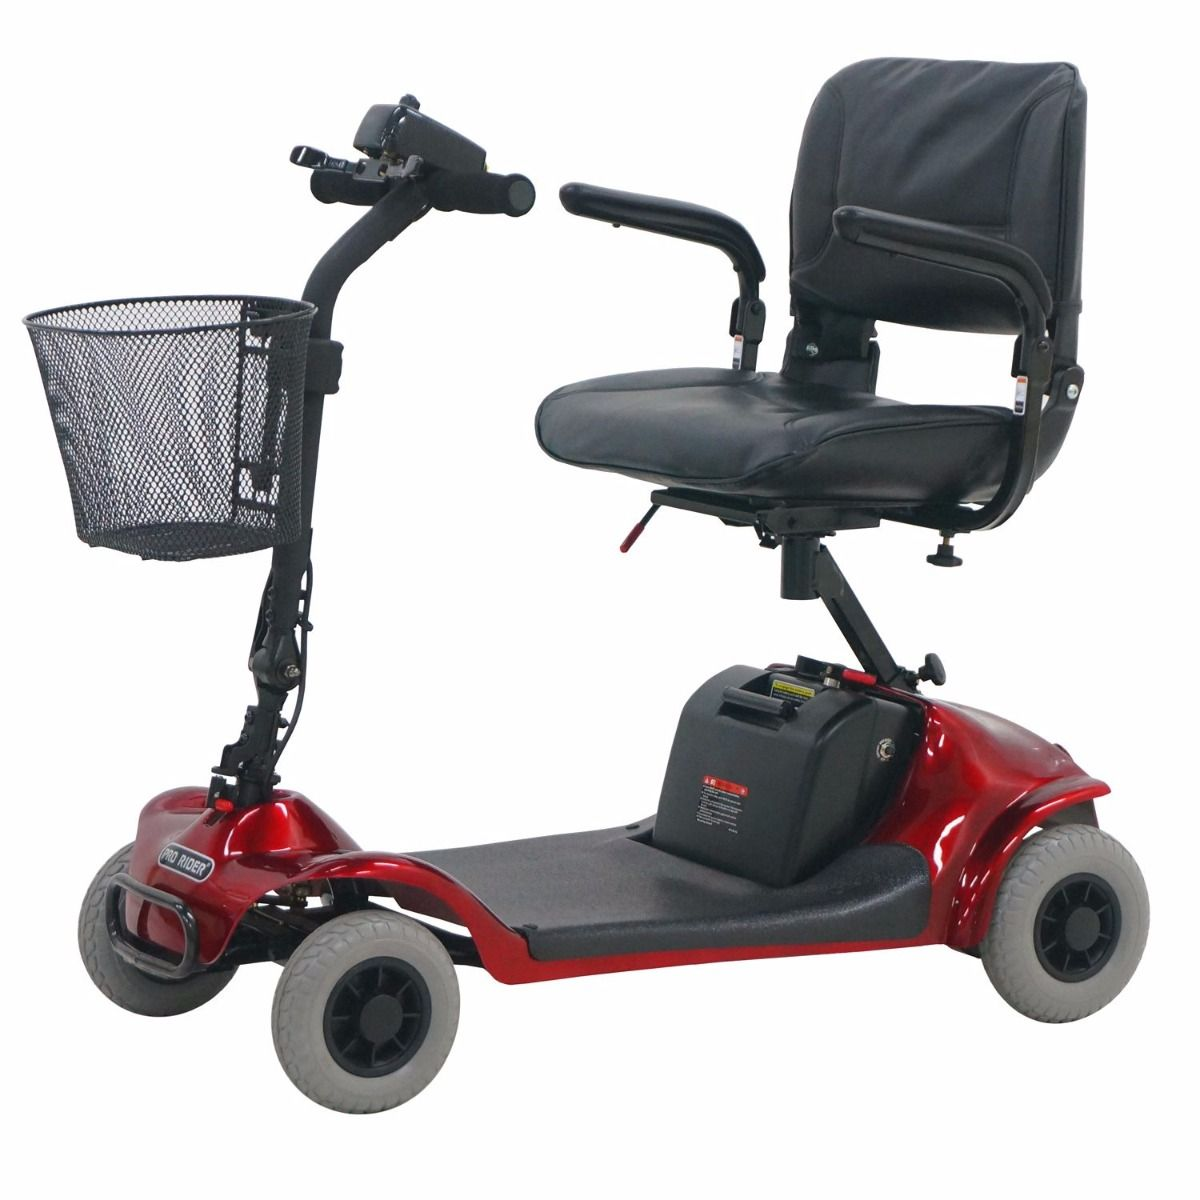 The Pro Rider Elite Mobility Scooter